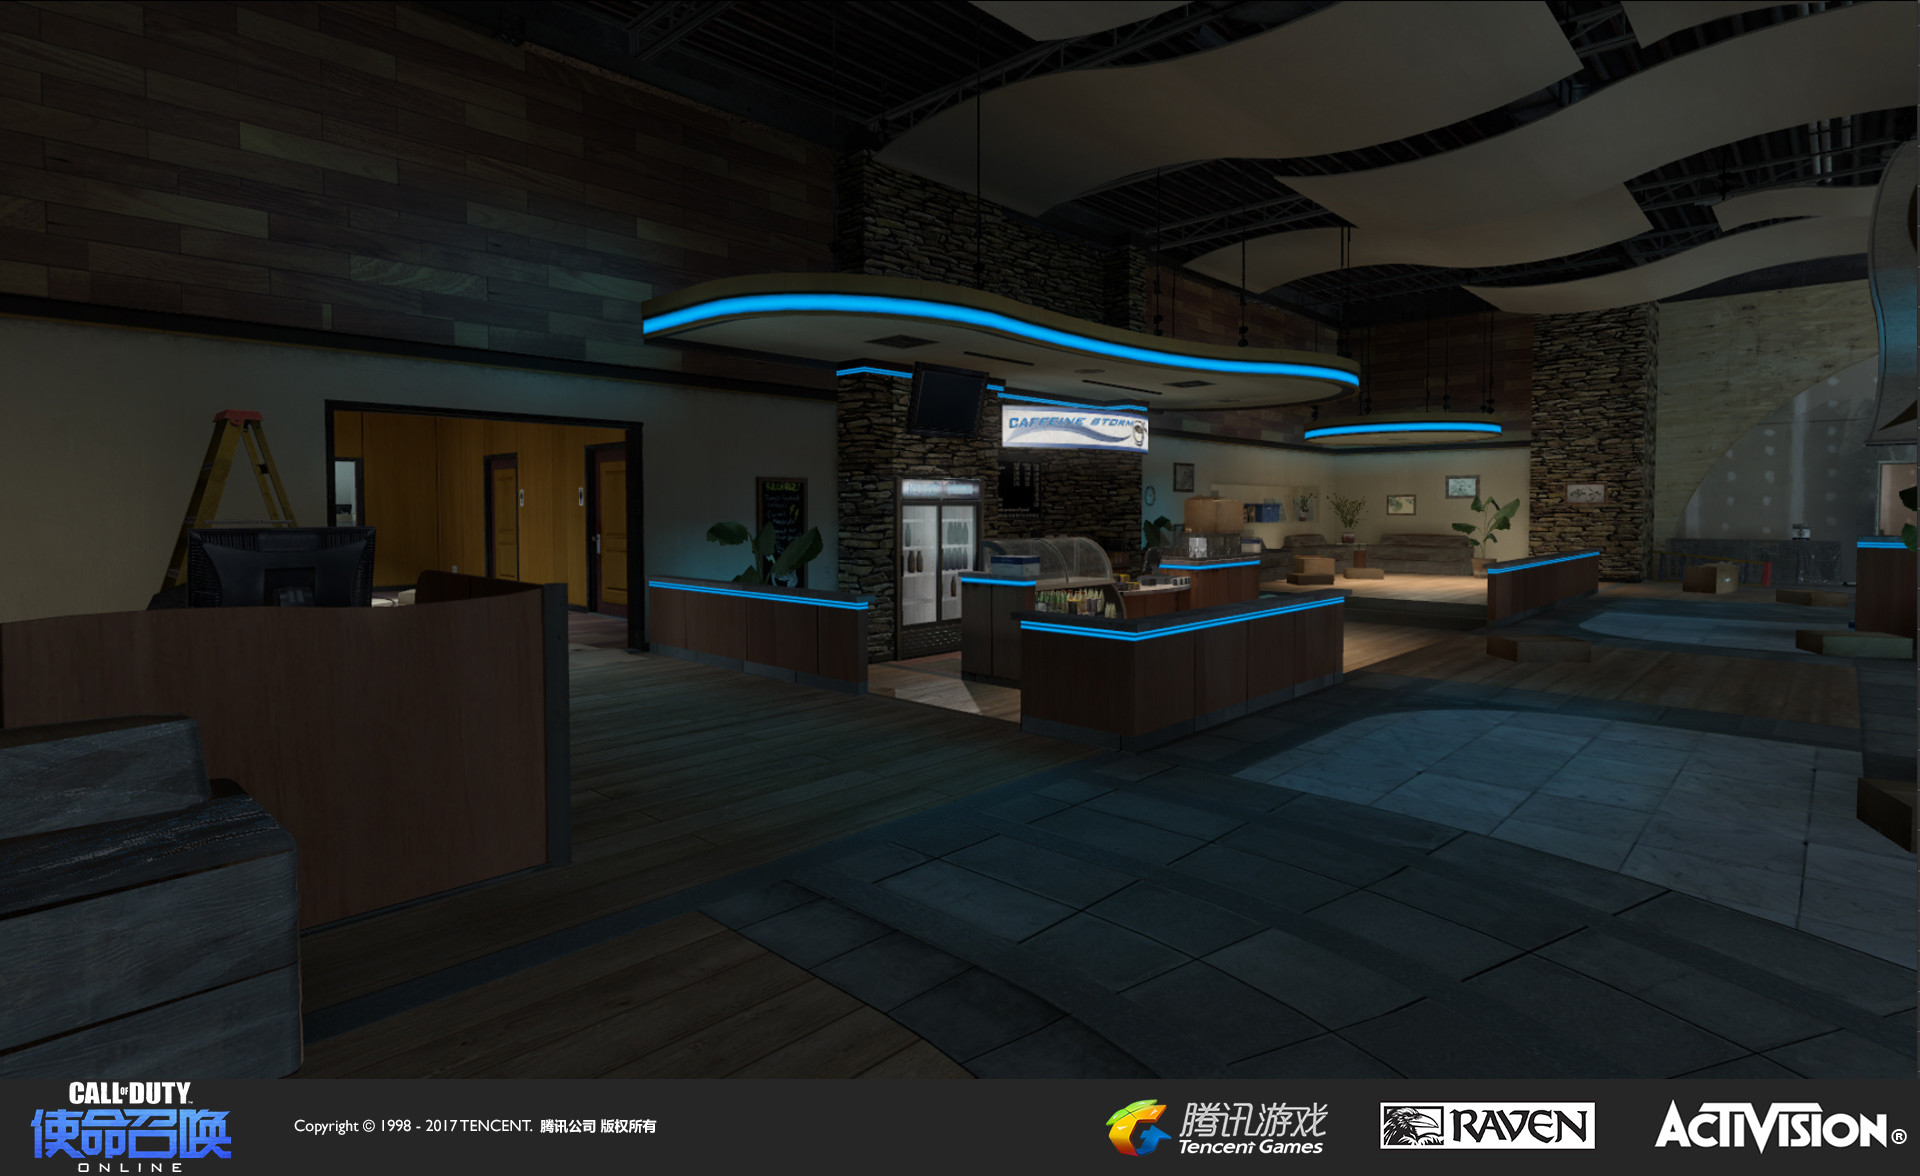 The main interior space where most of the combat takes place. I designed the re-themed look, created the new coffee shop branding and signage, added ceiling decorative models, reworked the geo, and added illuminated strips.